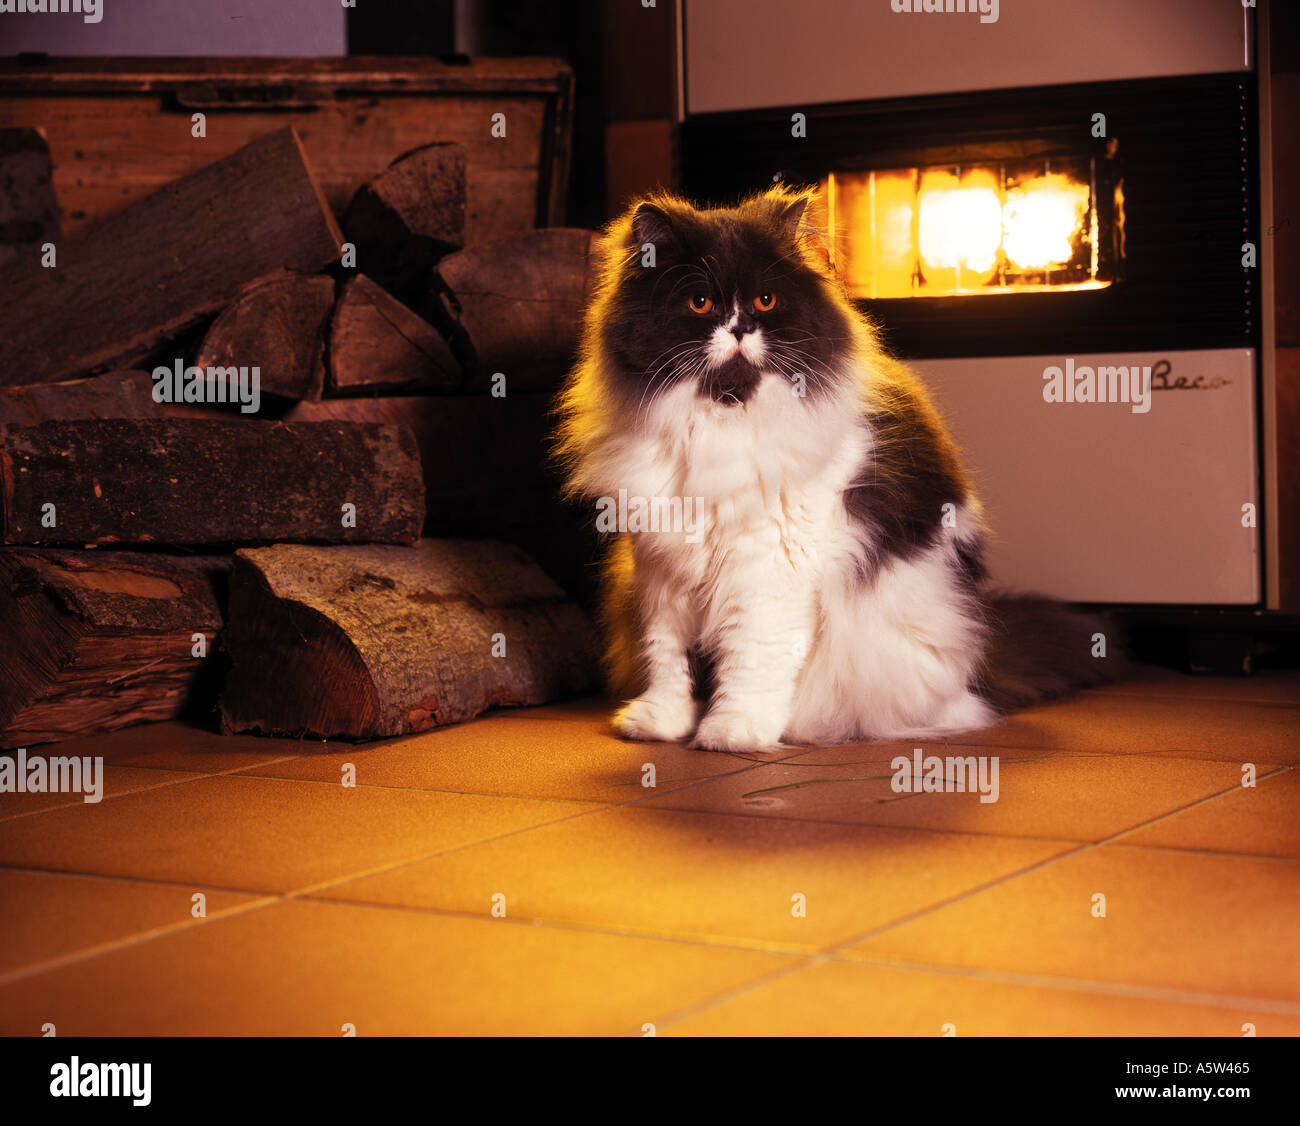 Persian cat in front of fireplace Stock Photo, Royalty Free Image ...